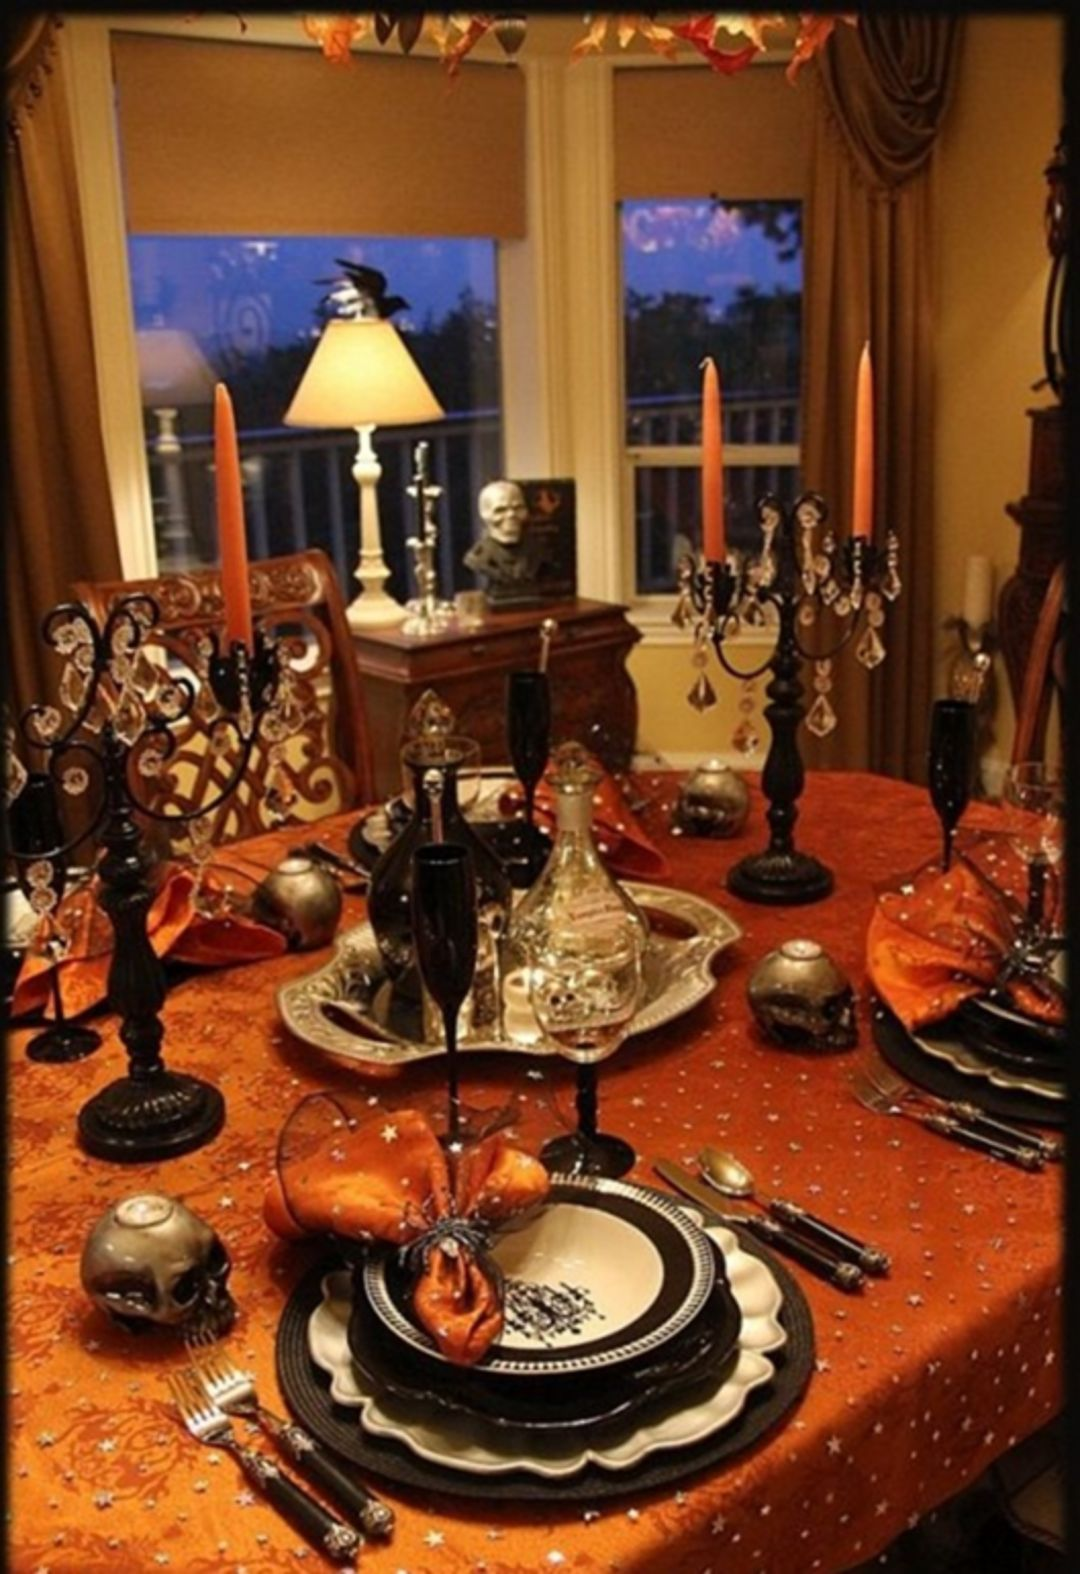 Epic 25 Amazing Halloween Decorations For Your Home Https Bosidolot Com 2018 10 23 25 Amazing Hal Halloween Party Dinner Halloween Table Halloween Tablescape